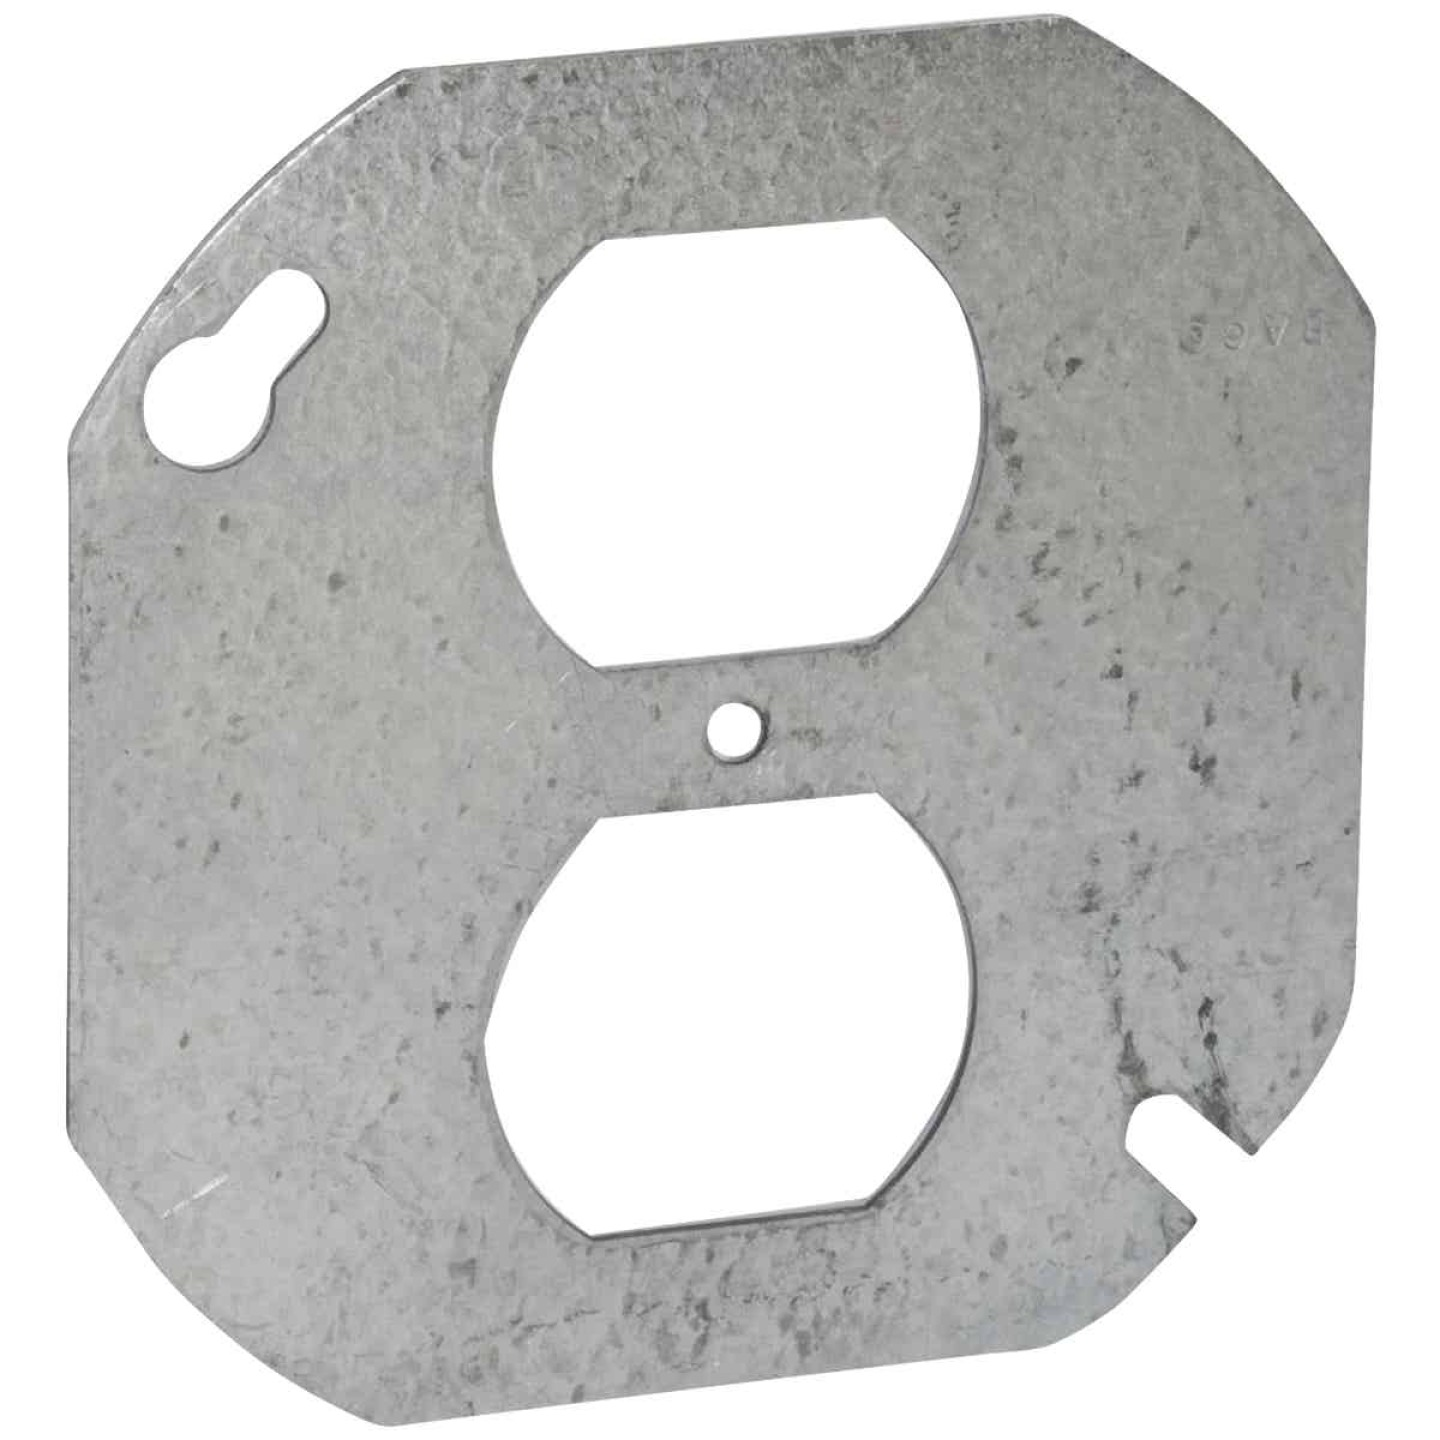 Raco 4 In. Duplex Receptacle Gray Round Box Cover Image 1